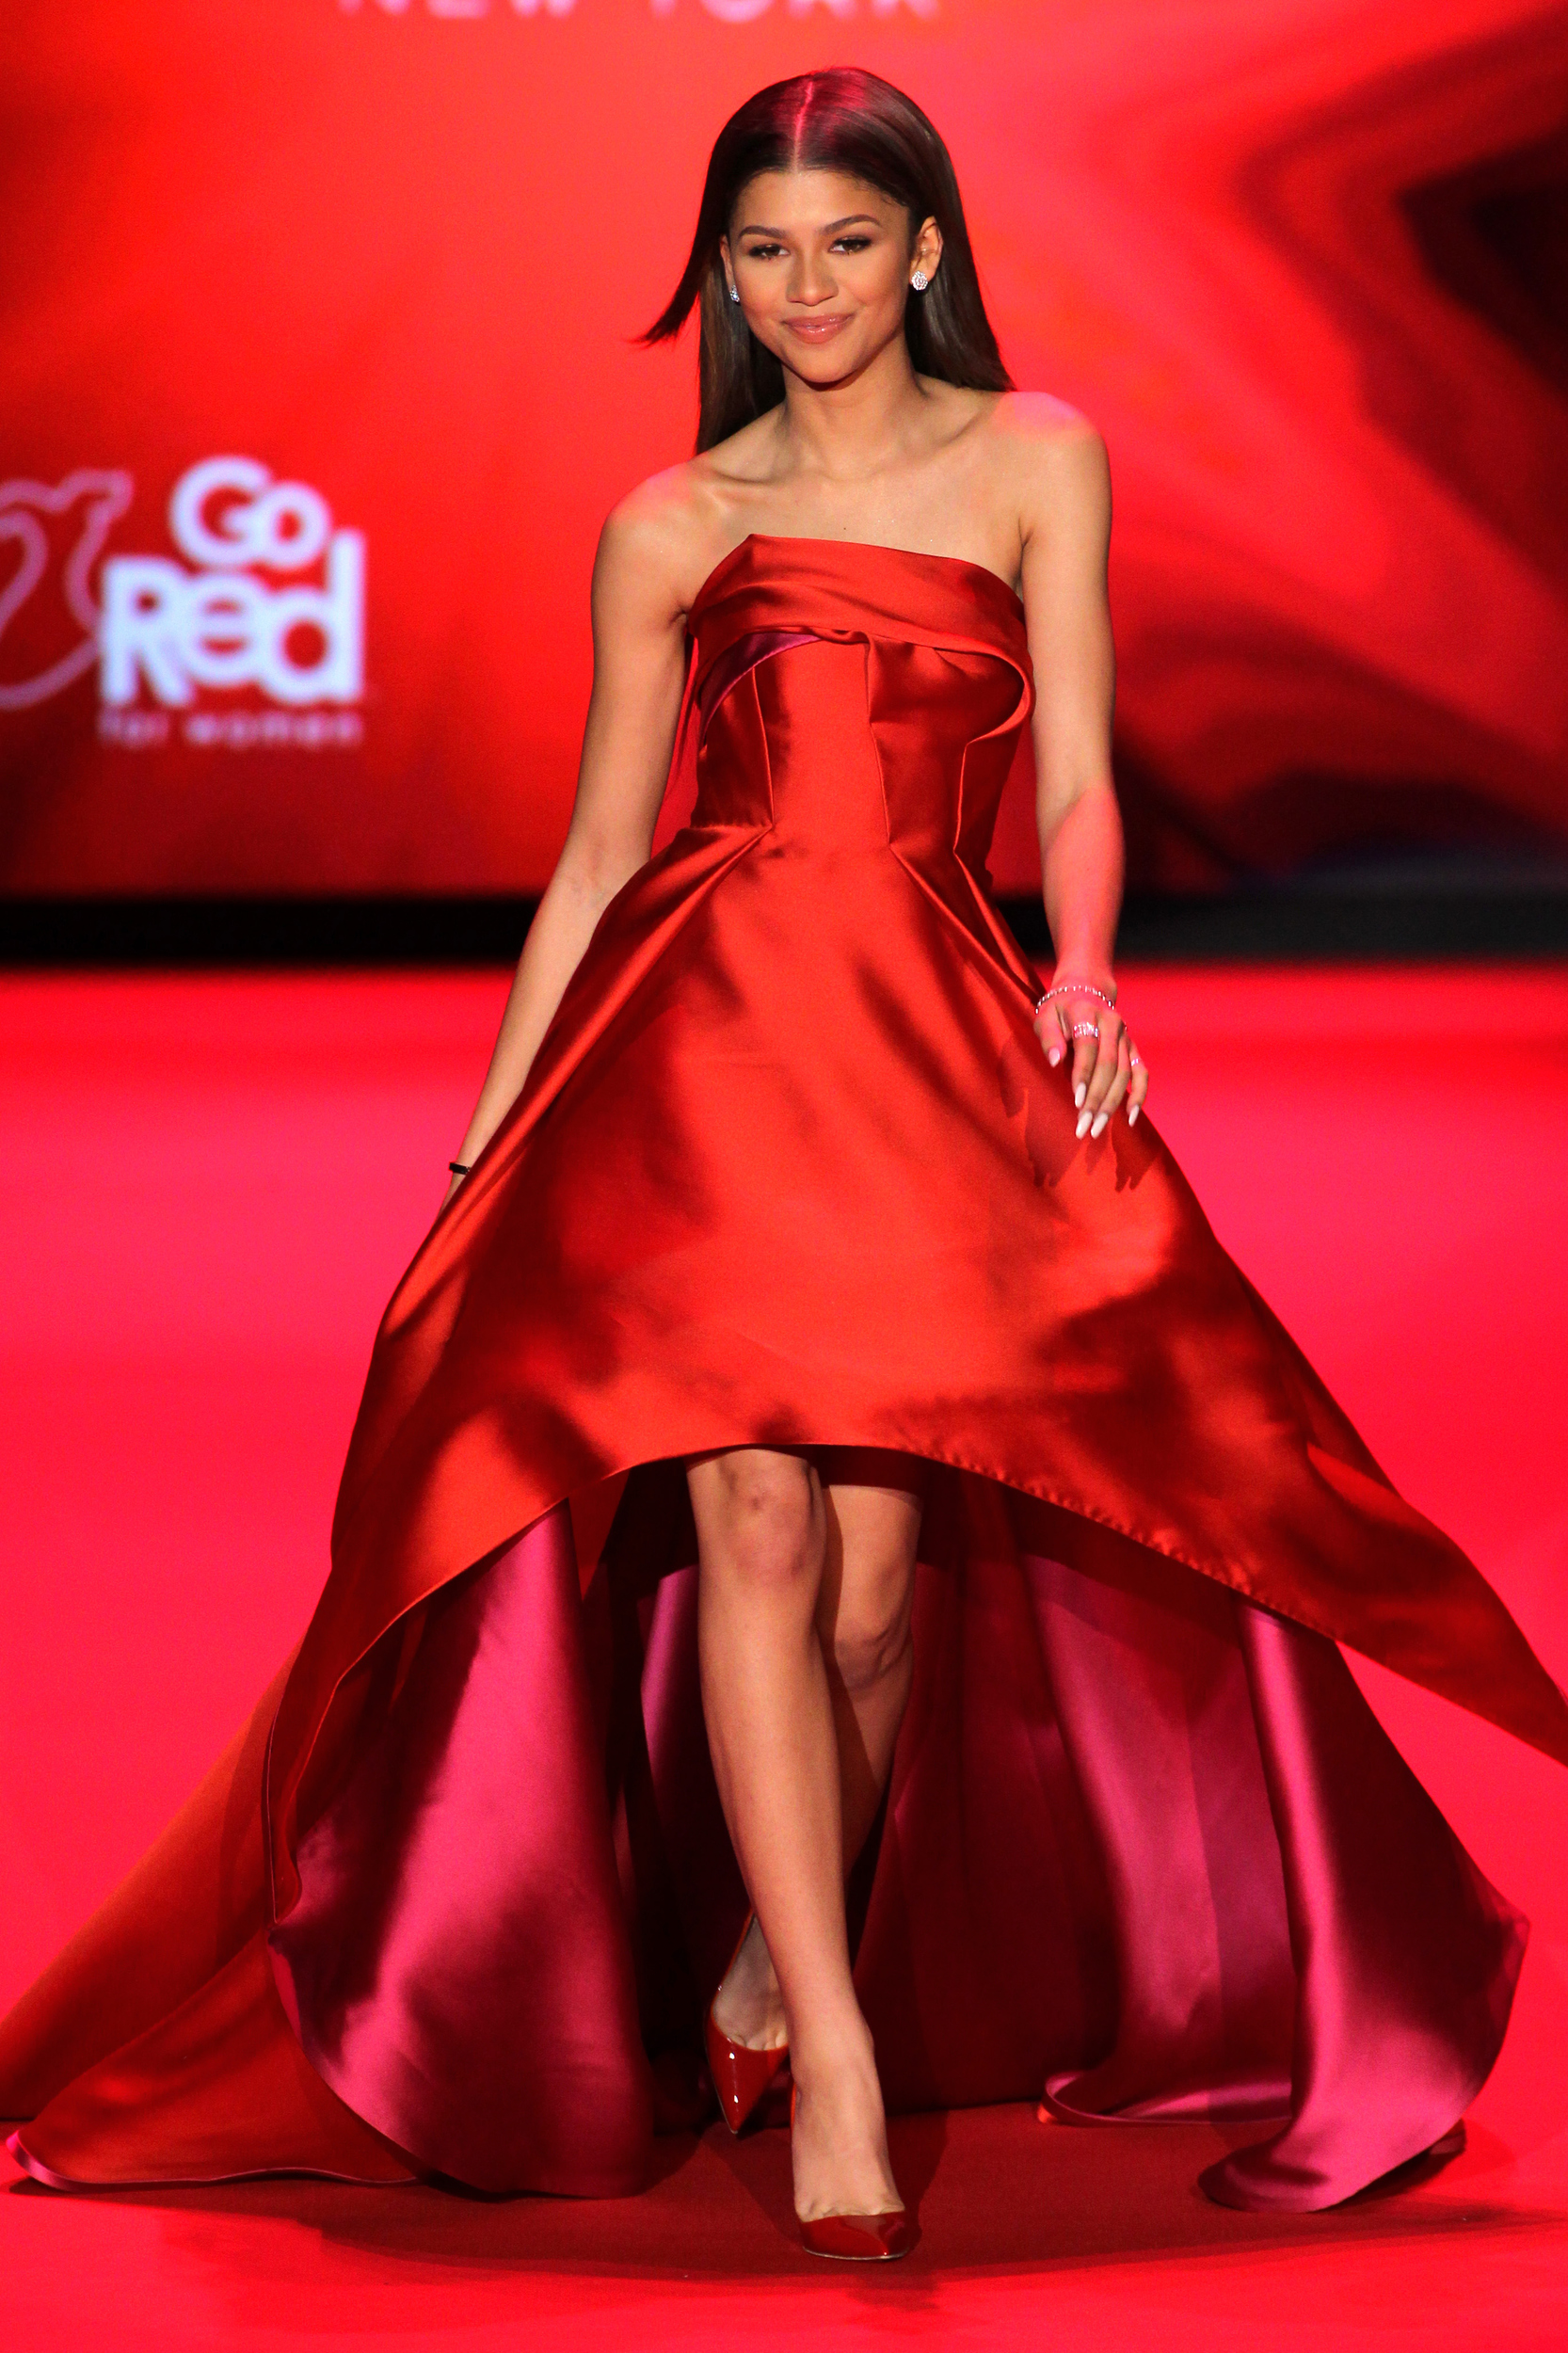 Go red for women red dress collection runway mercedes benz f 1